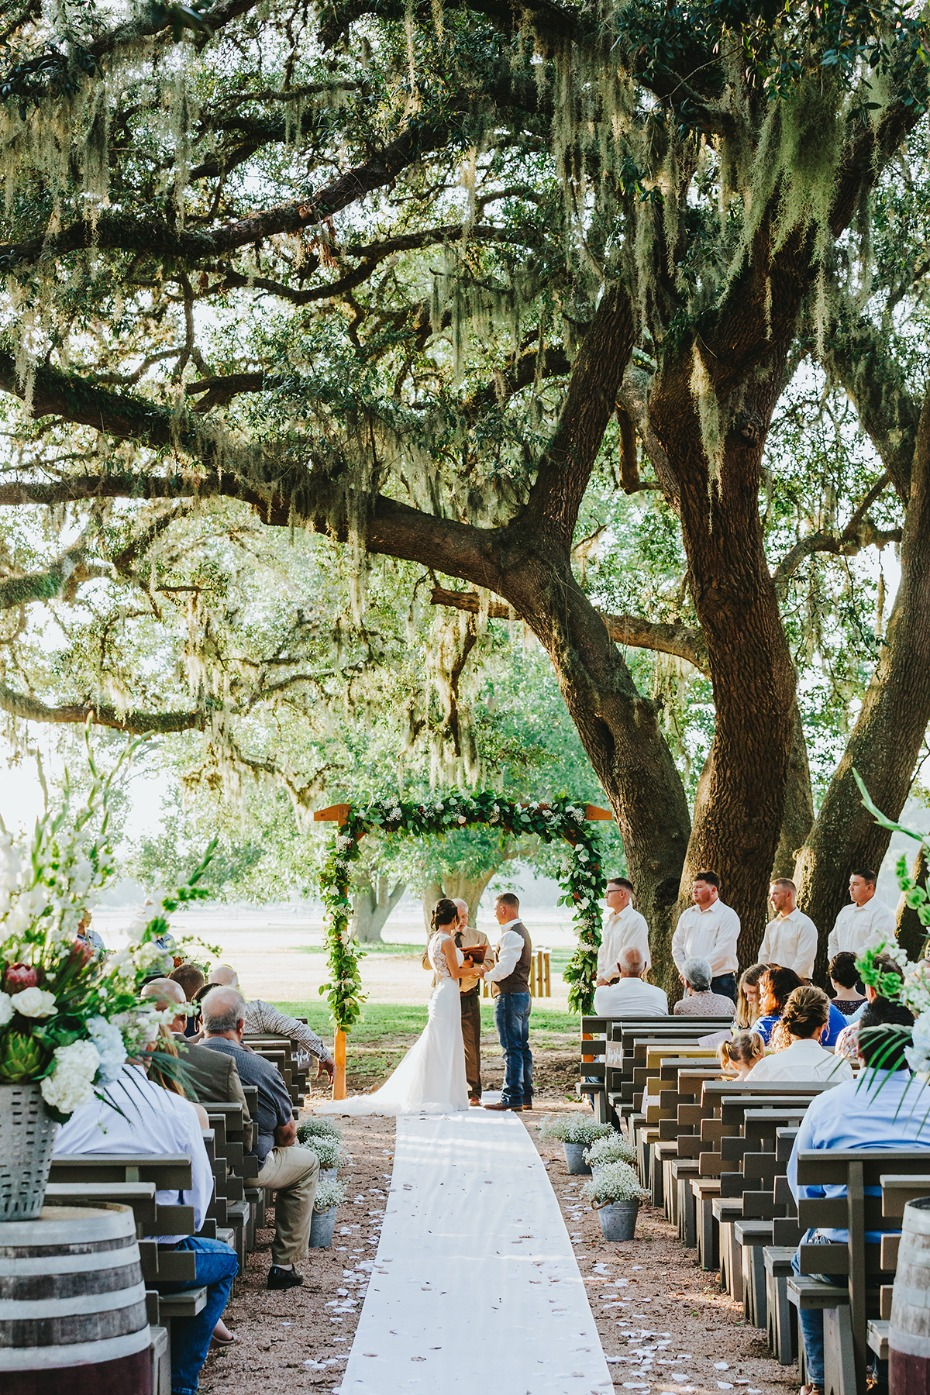 Romantic ceremony under old oak trees